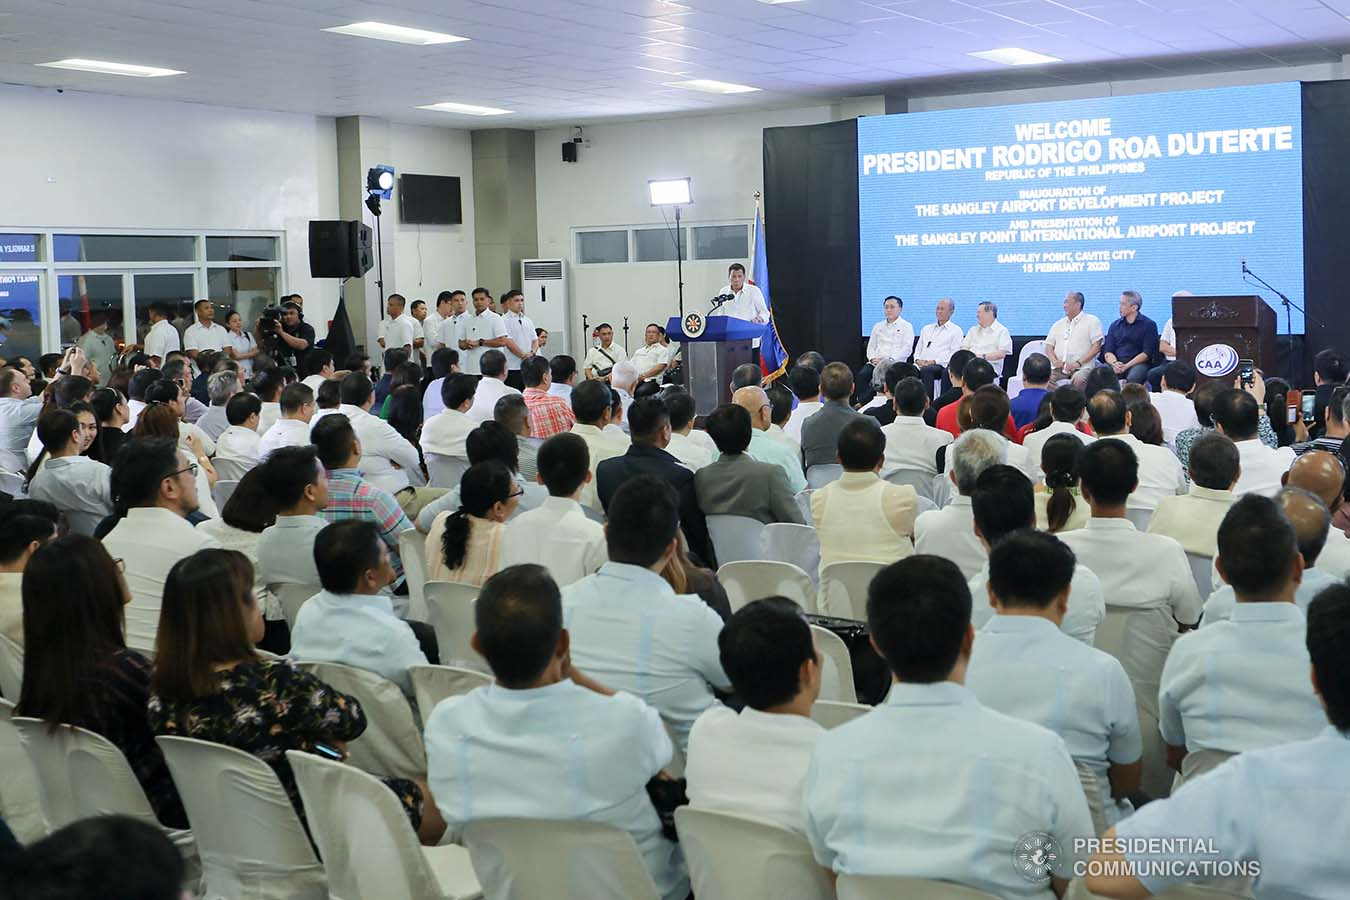 President Rodrigo Roa Duterte delivers a speech during the inauguration of the Sangley Airport Development Project in Cavite City on February 15, 2020. ALFRED FRIAS/PRESIDENTIAL PHOTO